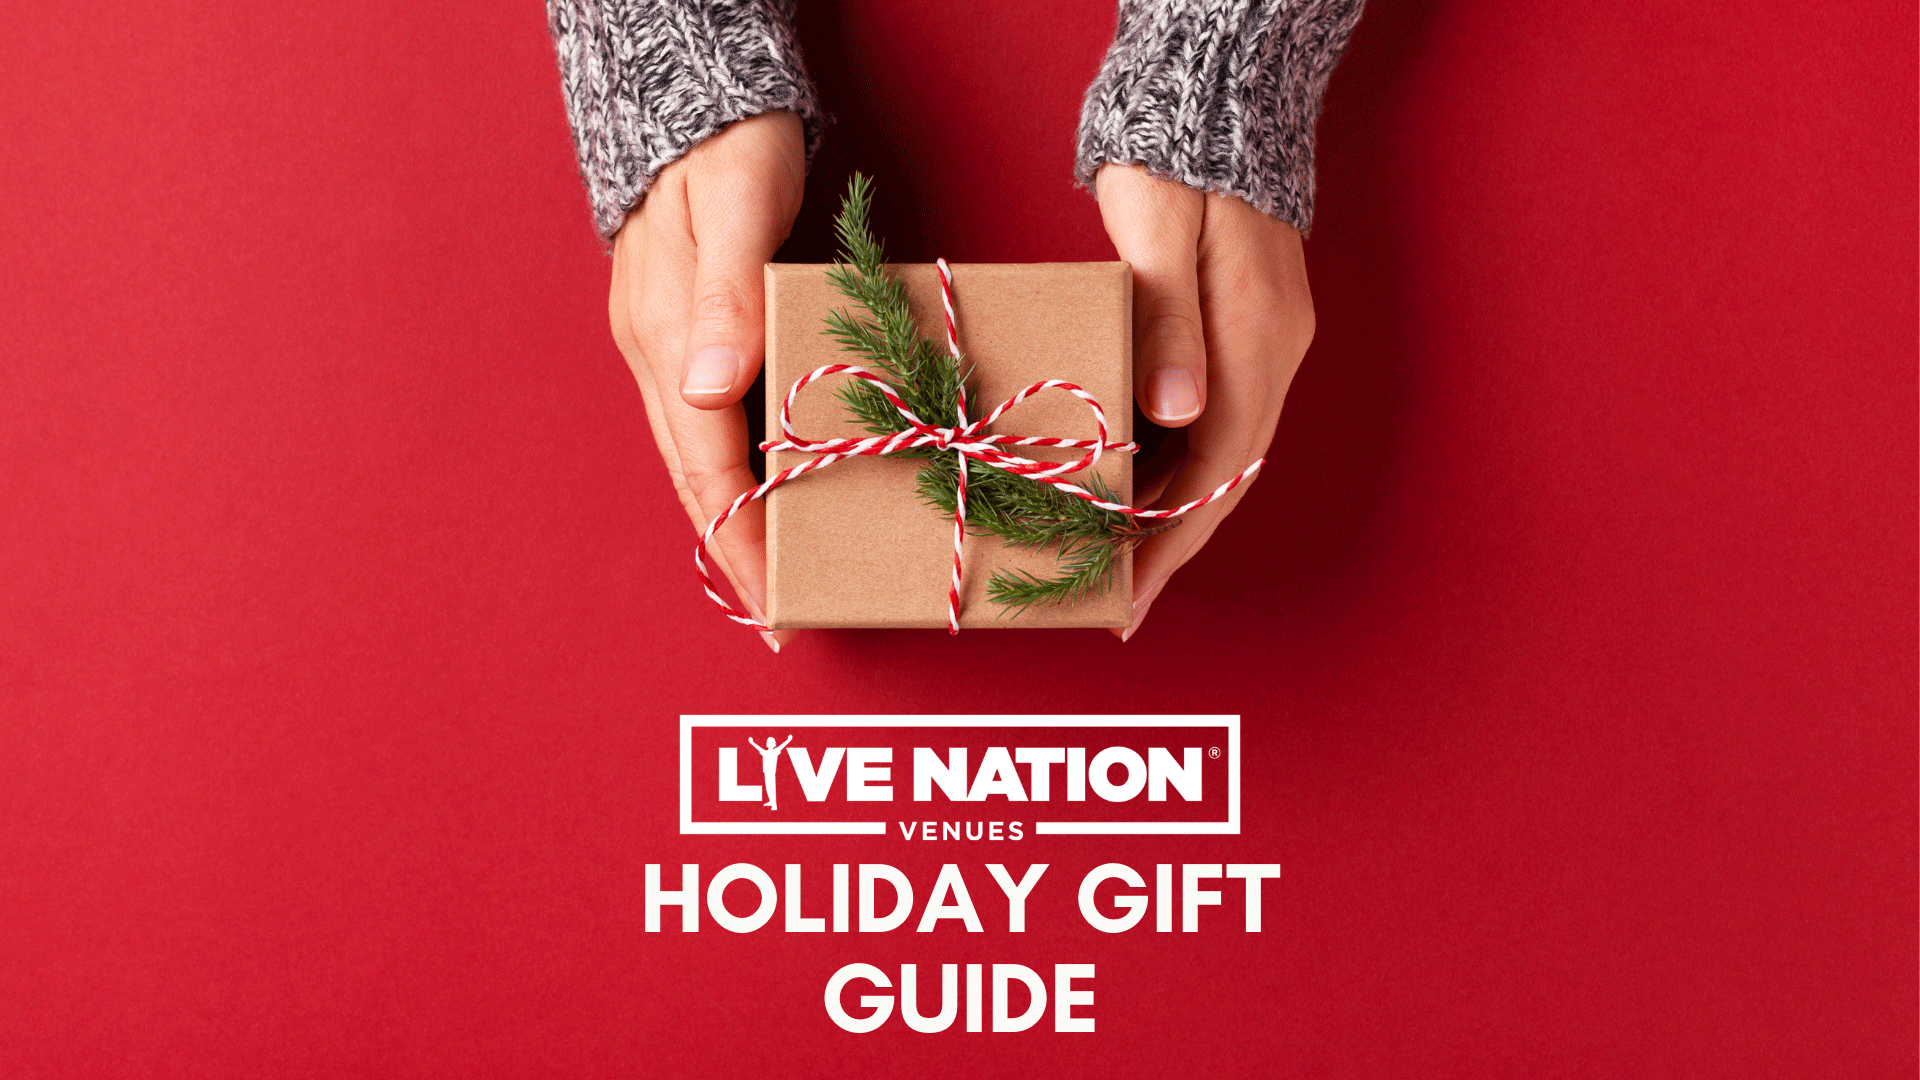 Live Nation Venues Holiday Gift Guide